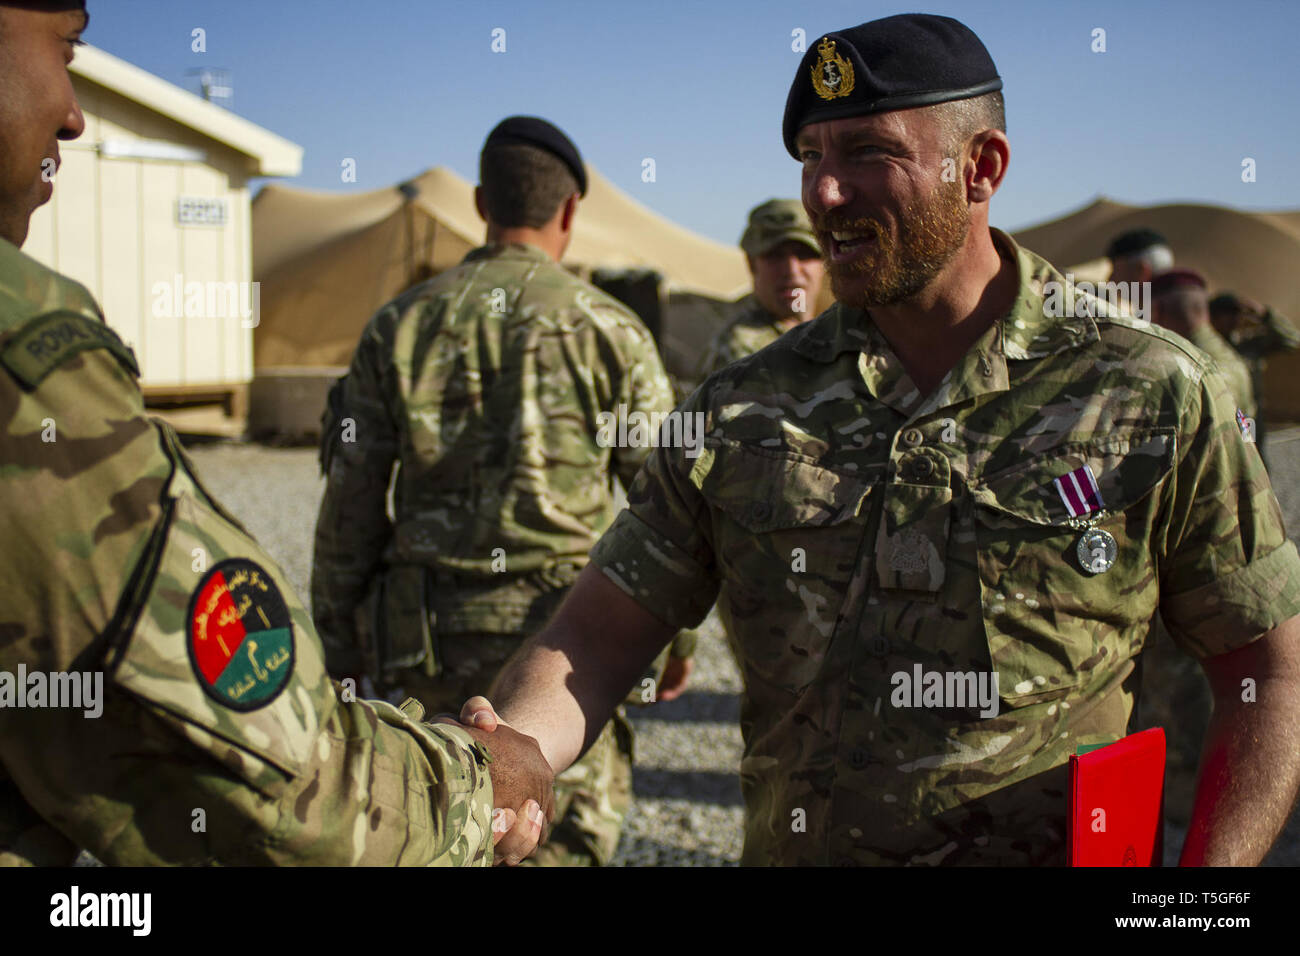 Camp Leatherneck, Helmand, Afghanistan. 25th Feb, 2012. British Royal Navy Warrant Offier Stephen Morgan is congratulated by a British servicemember after recieving the British Meritorious Service Medal (MSM) at Camp Leatherneck, Helmand province, Afghanistan, Feb. 26, 2012. Morgan recieved the British Meritorious Service Medal as a retirement medal after 32 years of service. In Afghanistan, he was a contract officer for NATO Training Mission Afghanistan's Regional Support Command Southwest. Morgan enlisted in the Royal Navy at age 16 and served in the Falklands War aboard the destroy - Stock Image